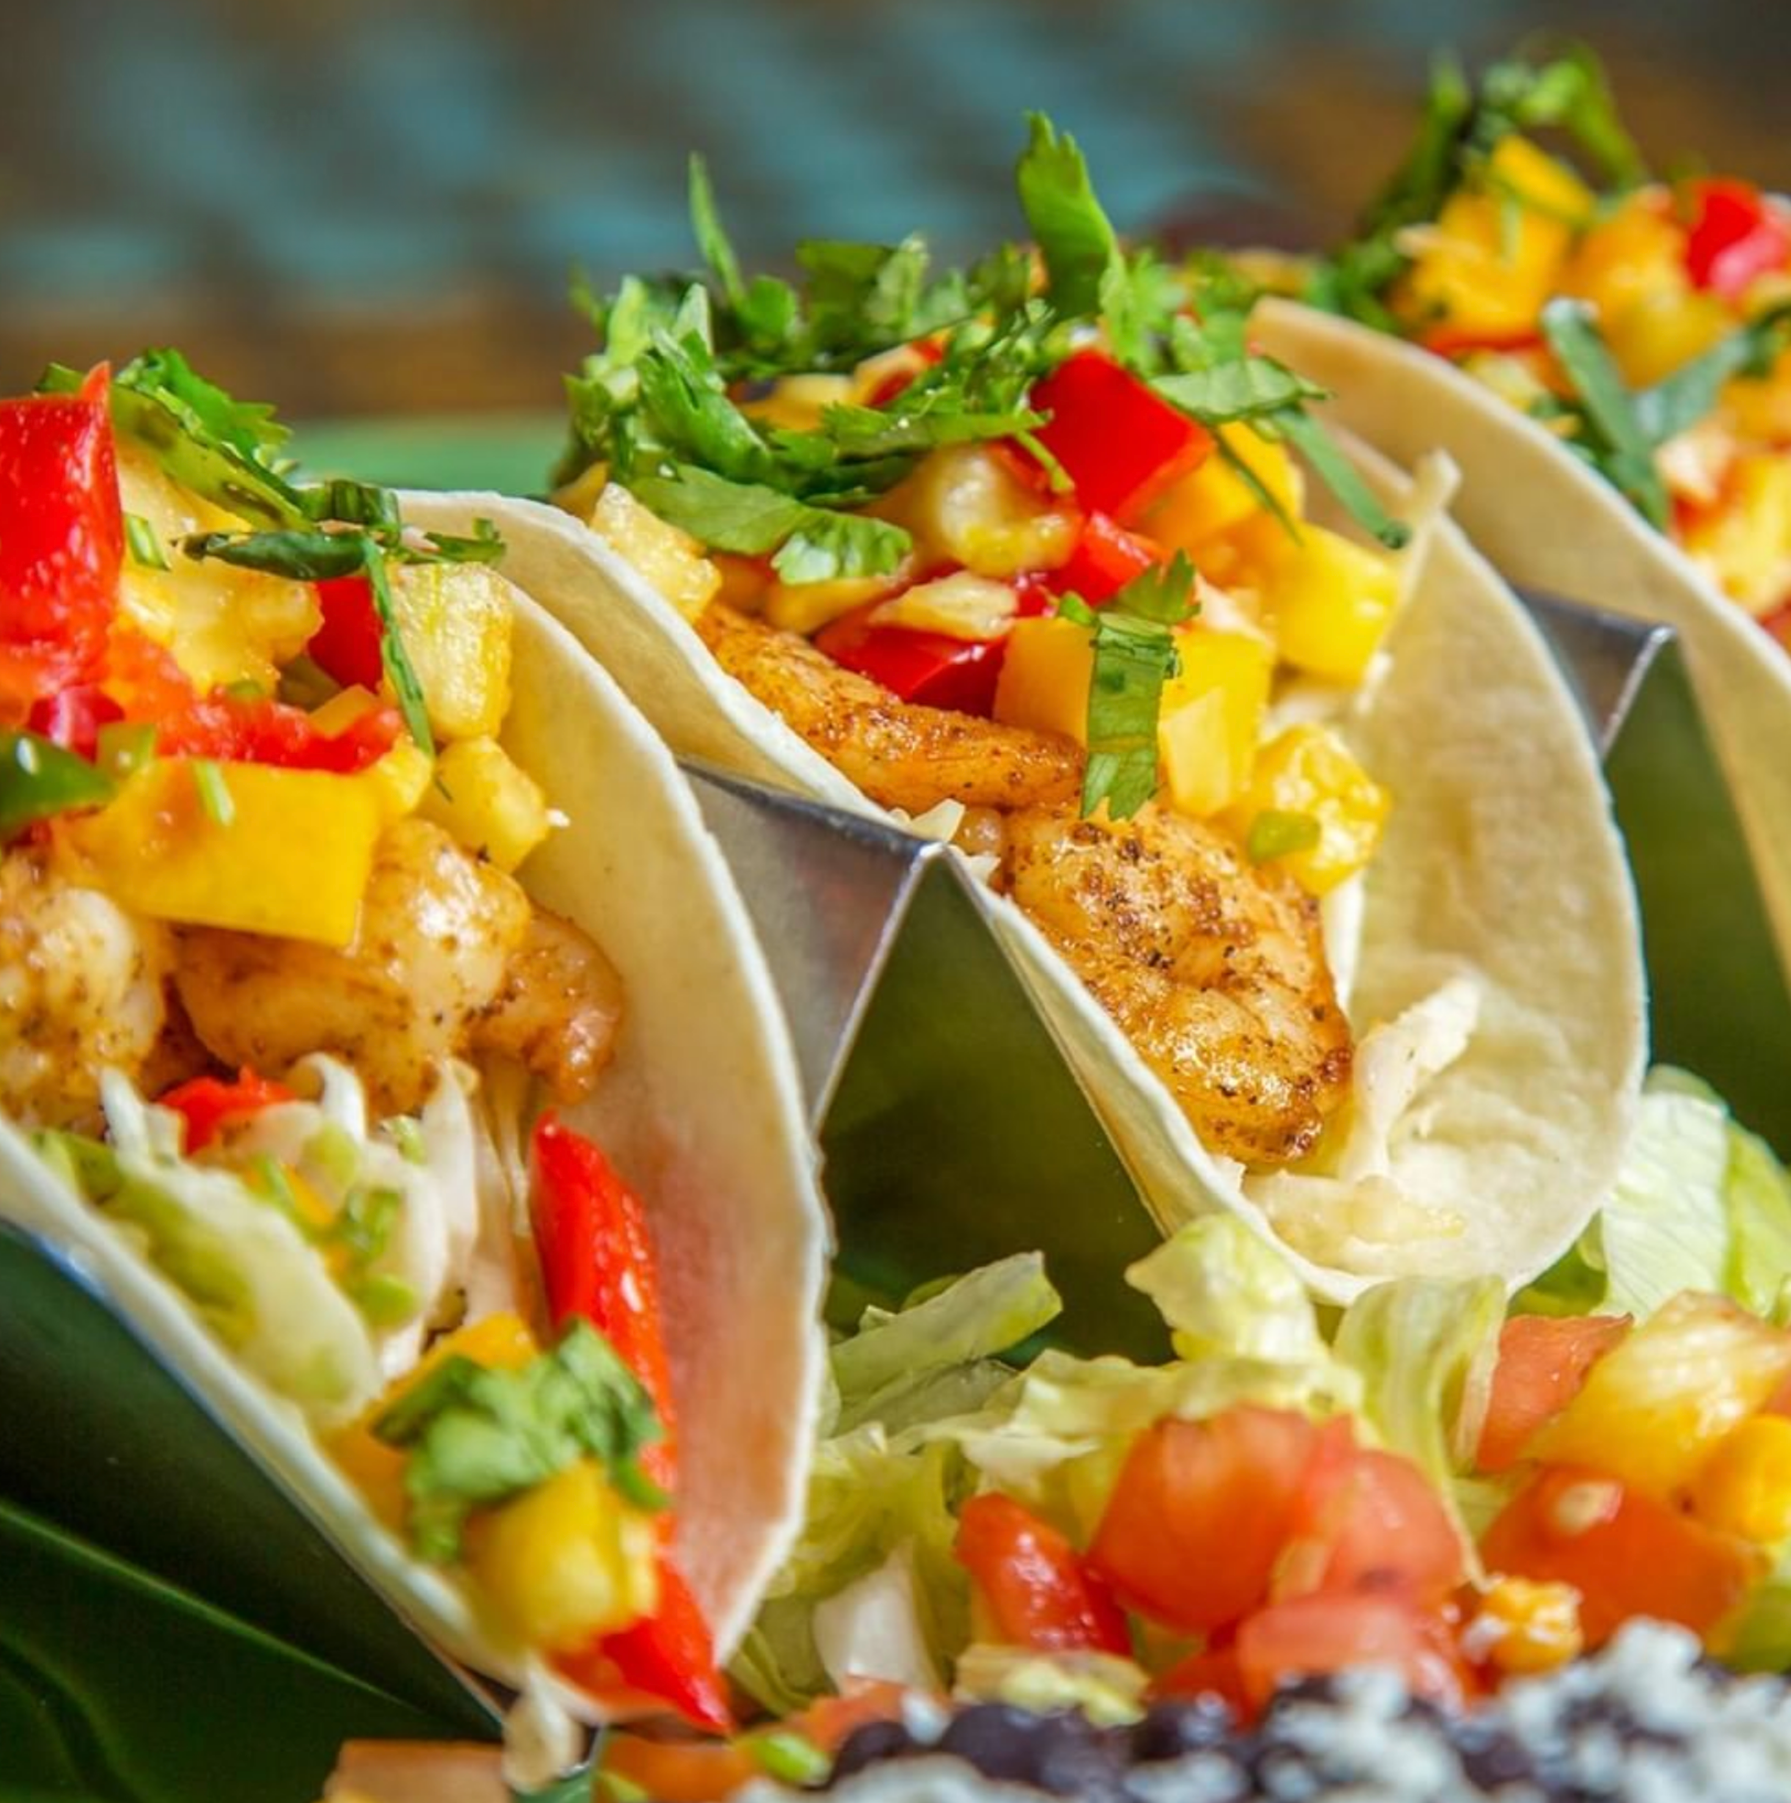 The beach is coming to Gilbert with latest Sandbar Mexican Grill location